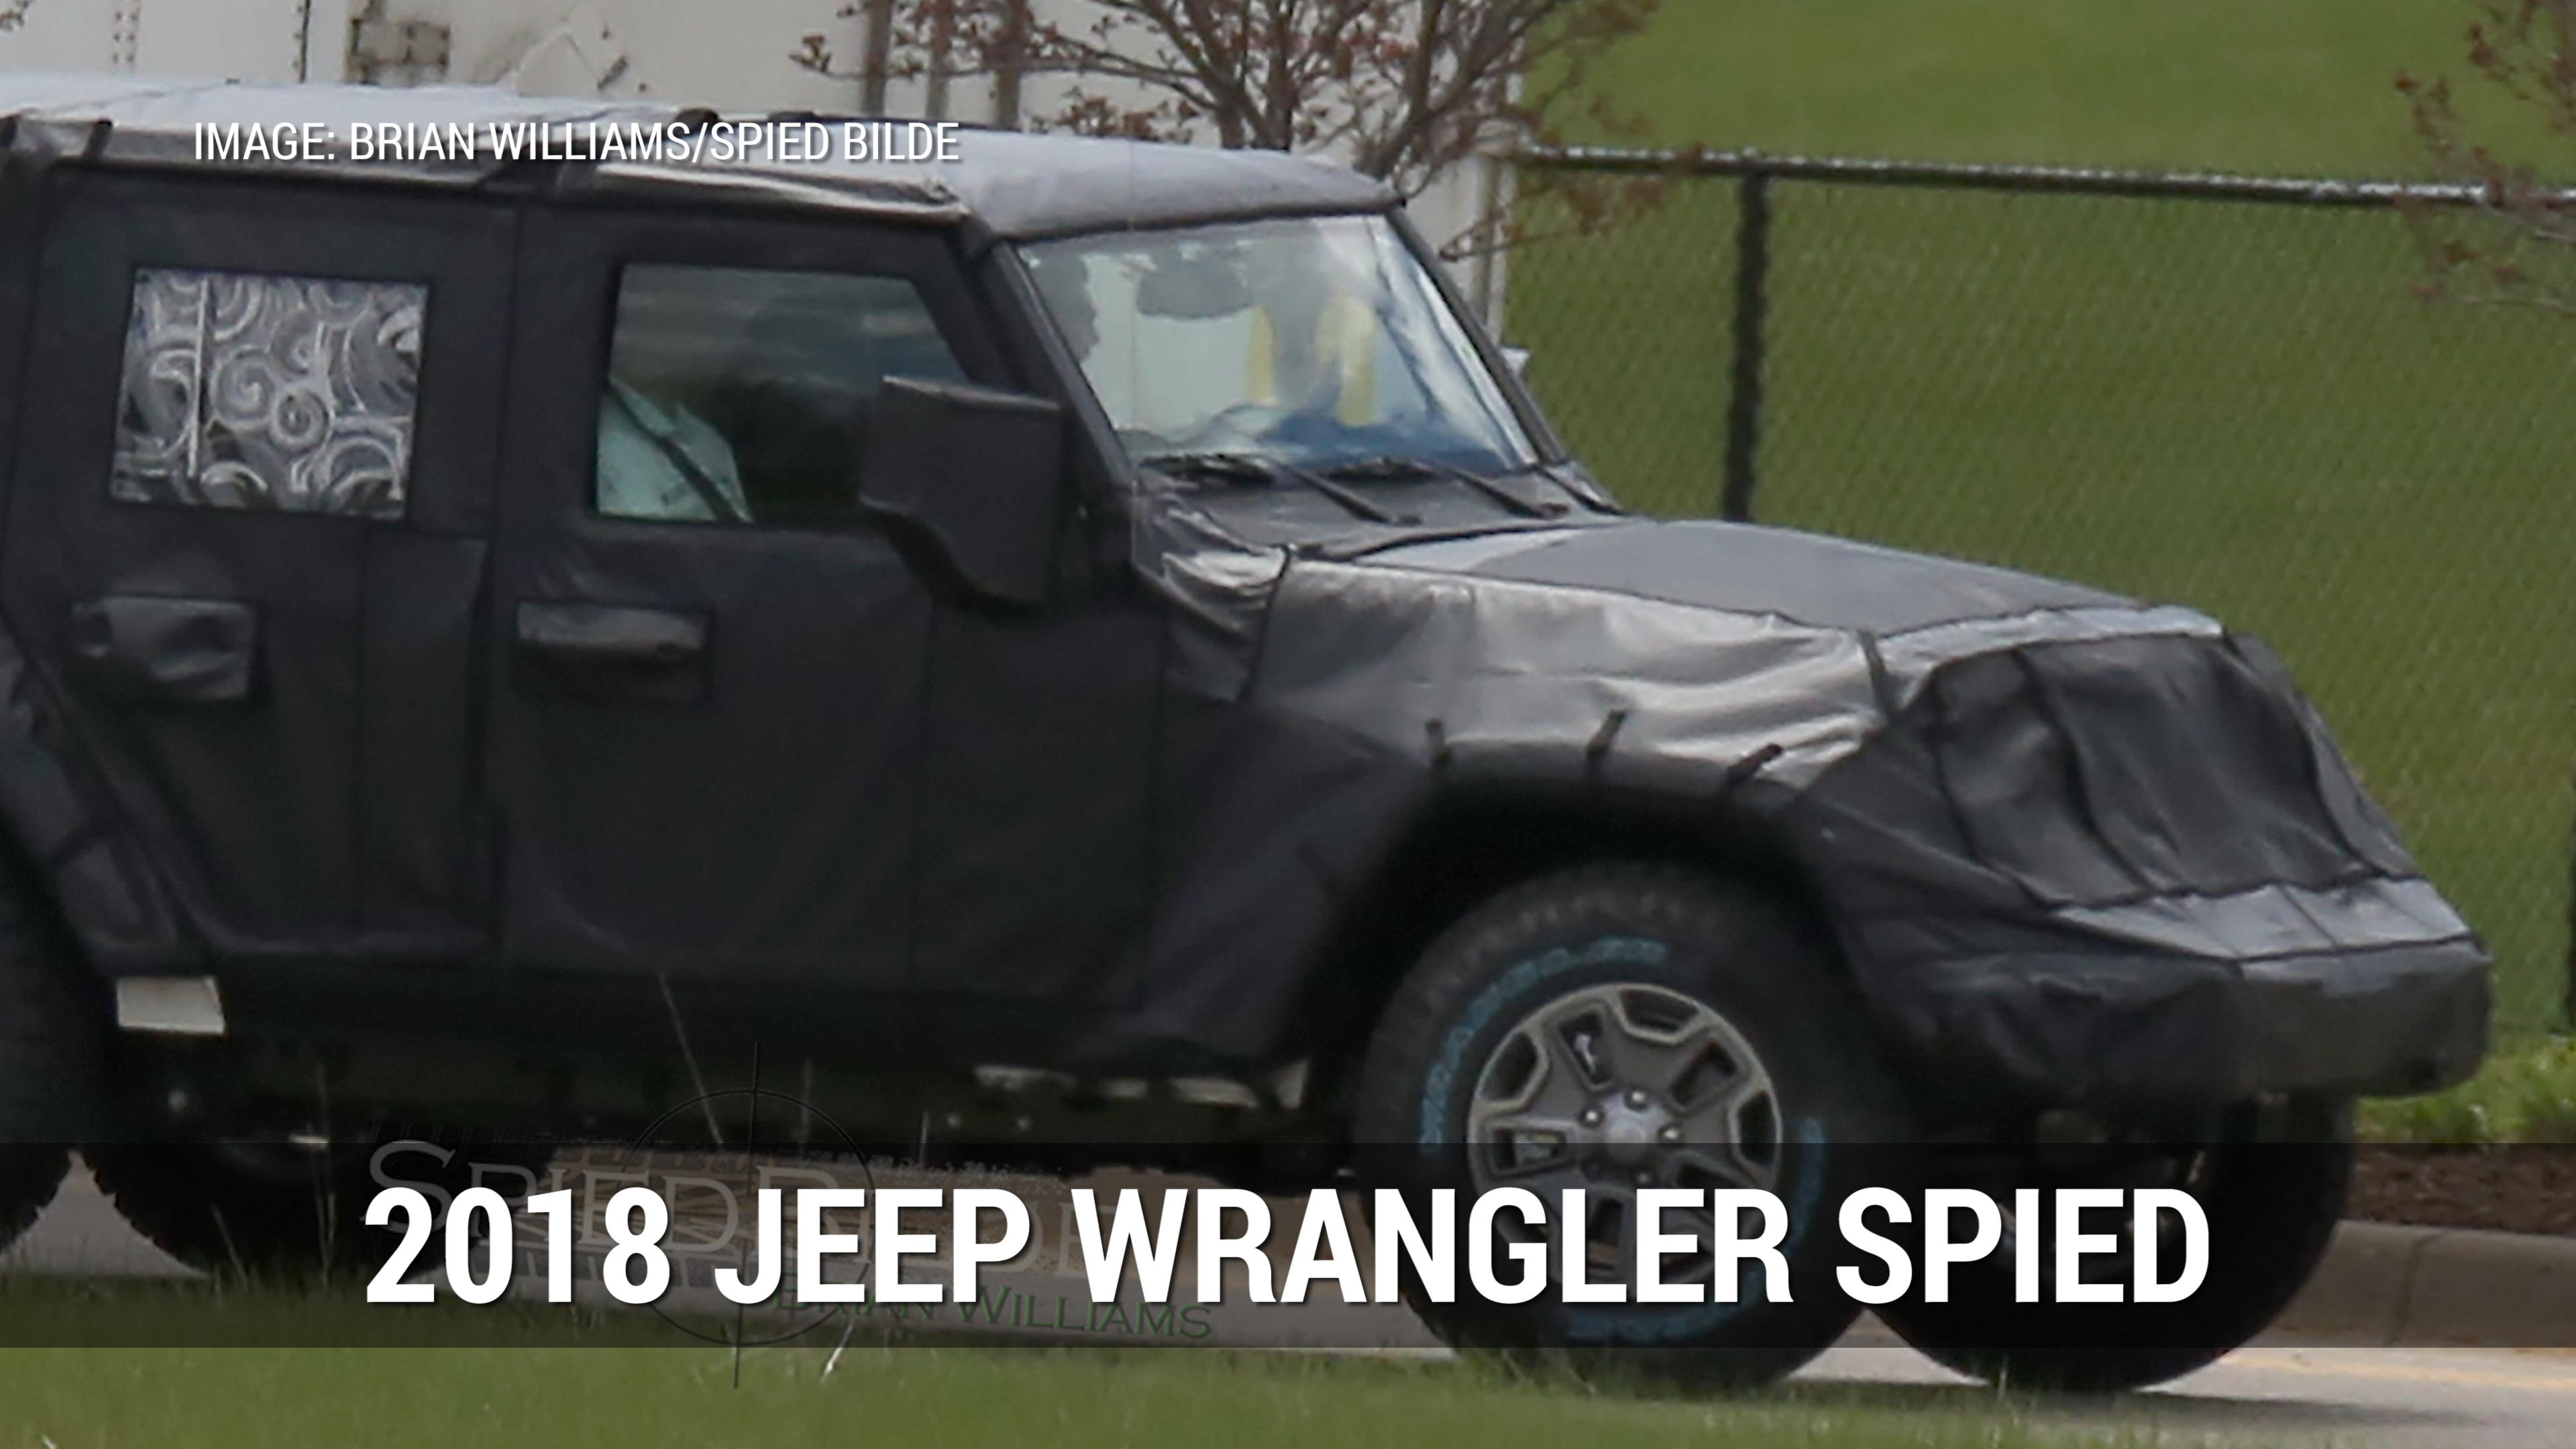 Stop waiting for the official Wrangler pickup and one of the